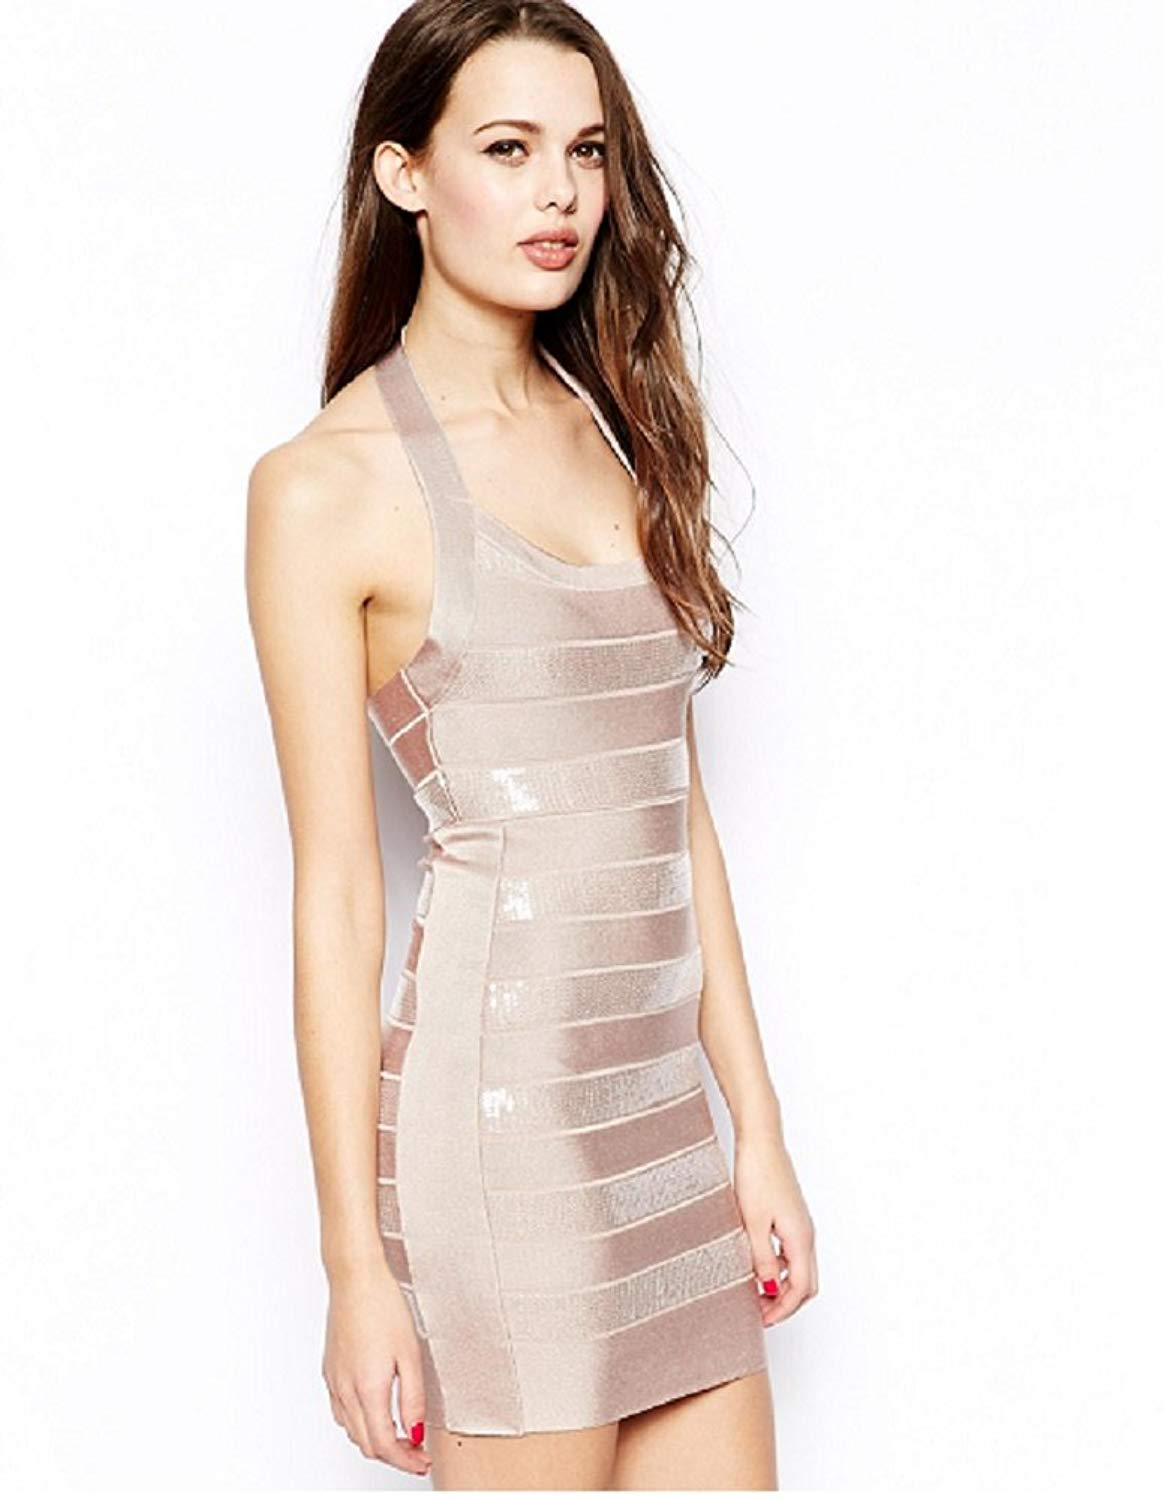 df60bed2b9d Get Quotations · French Connection Fcuk Women's Sparkly Spotlight Bodycon  Dress, ...